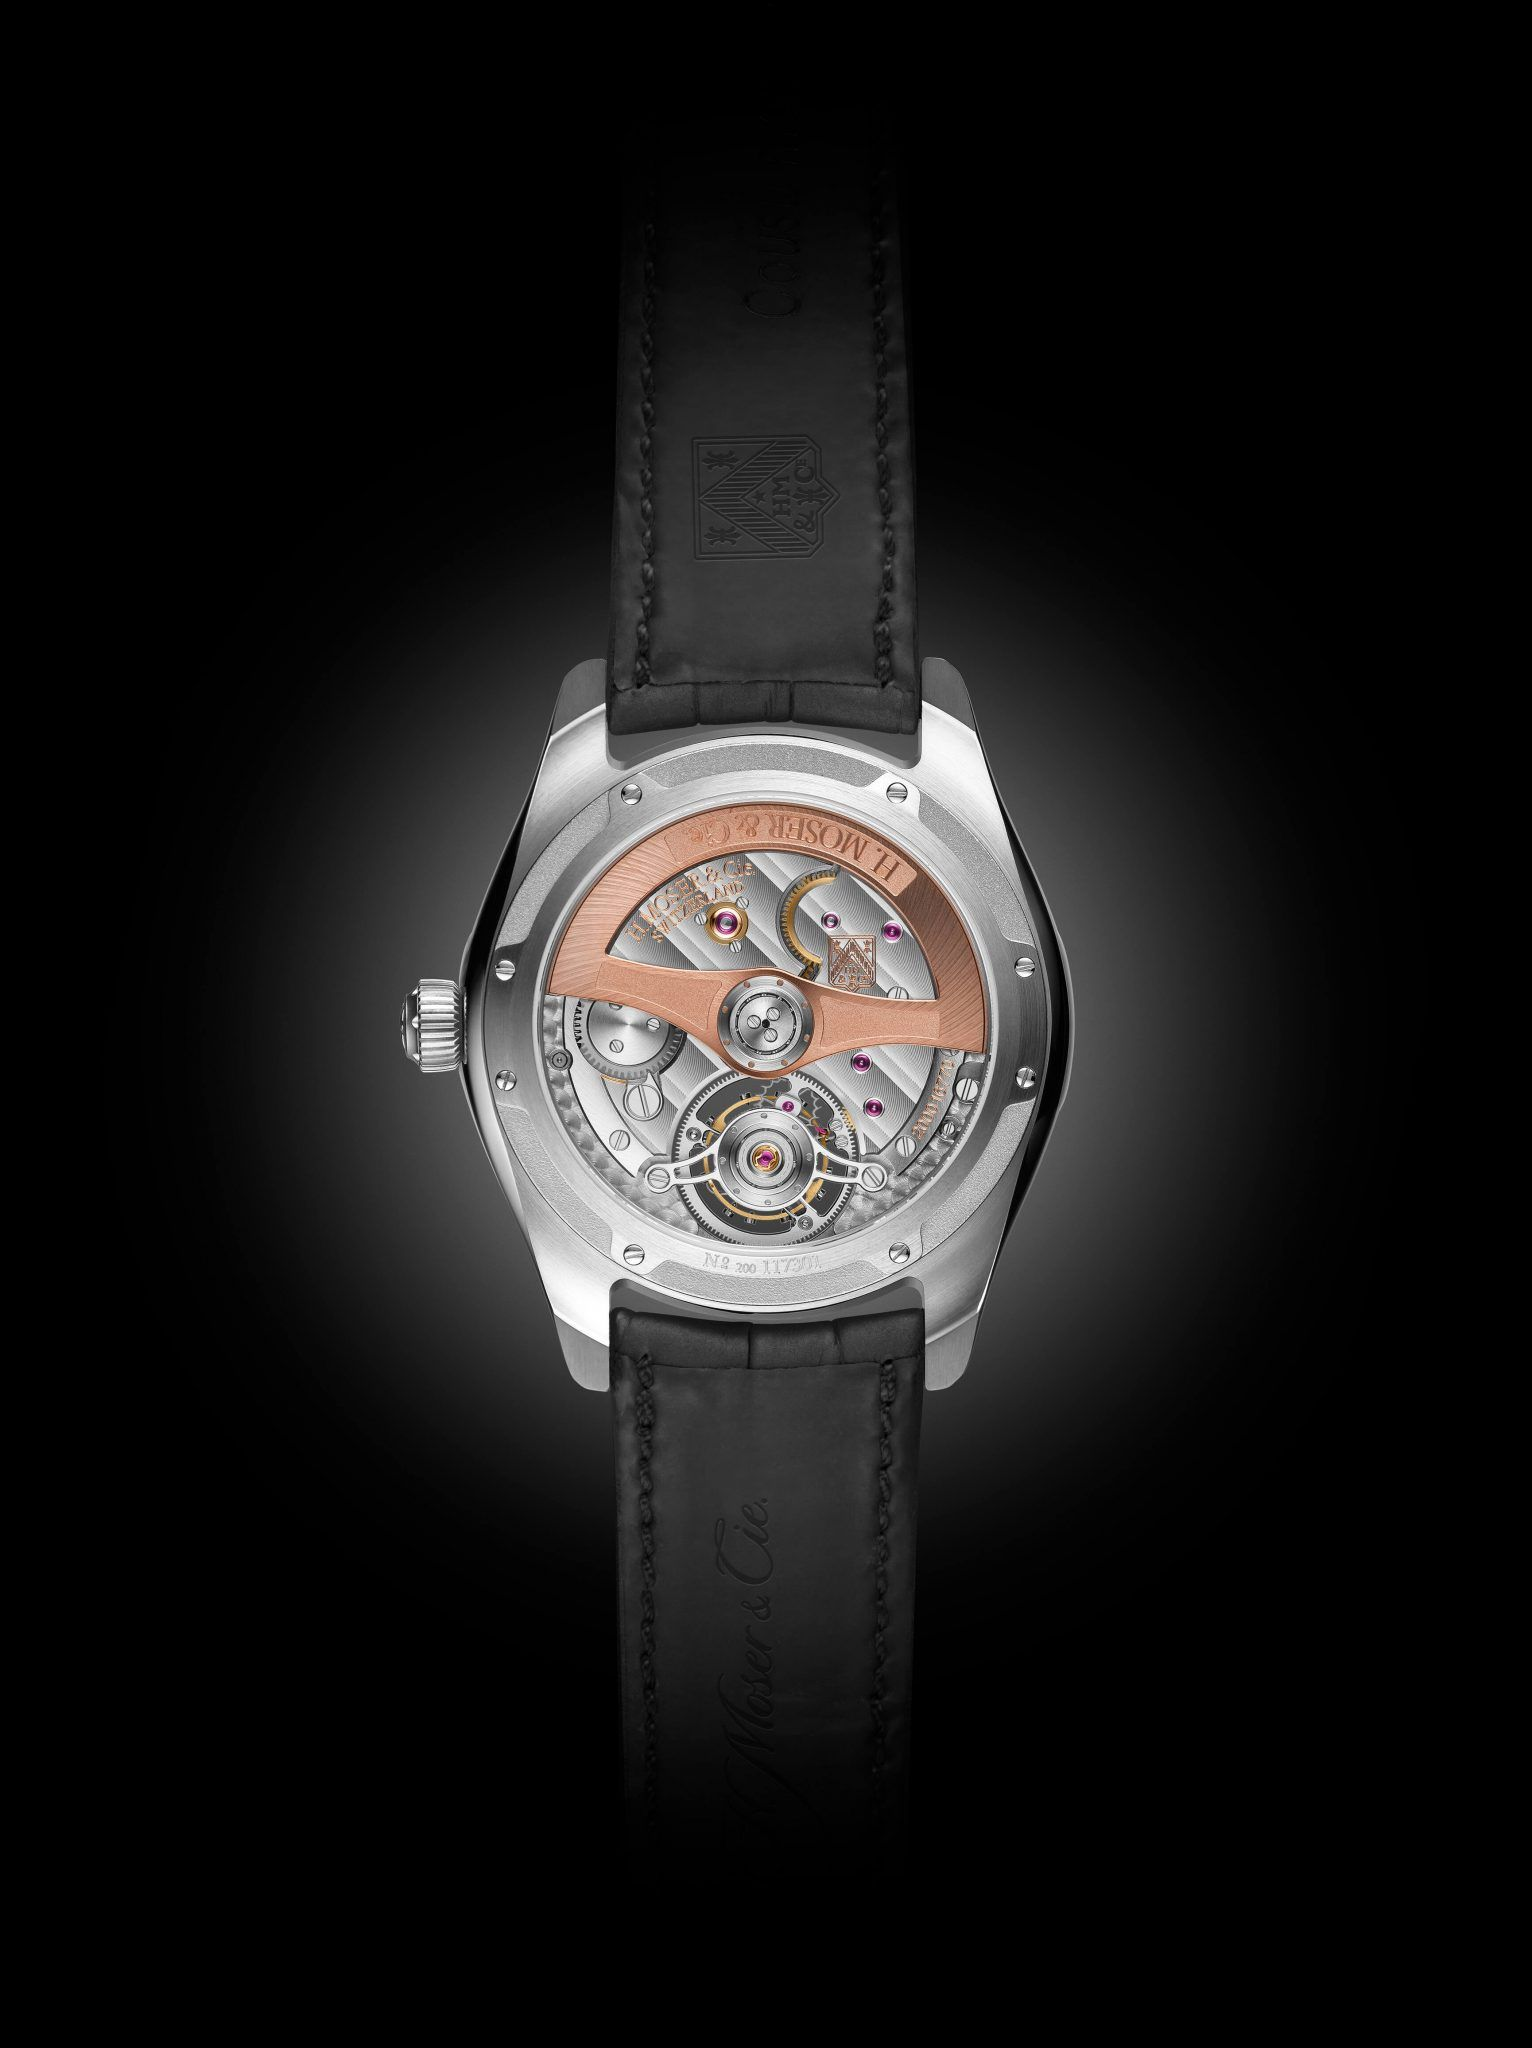 Pioneer Tourbillon_3804-1201_Back_Glow